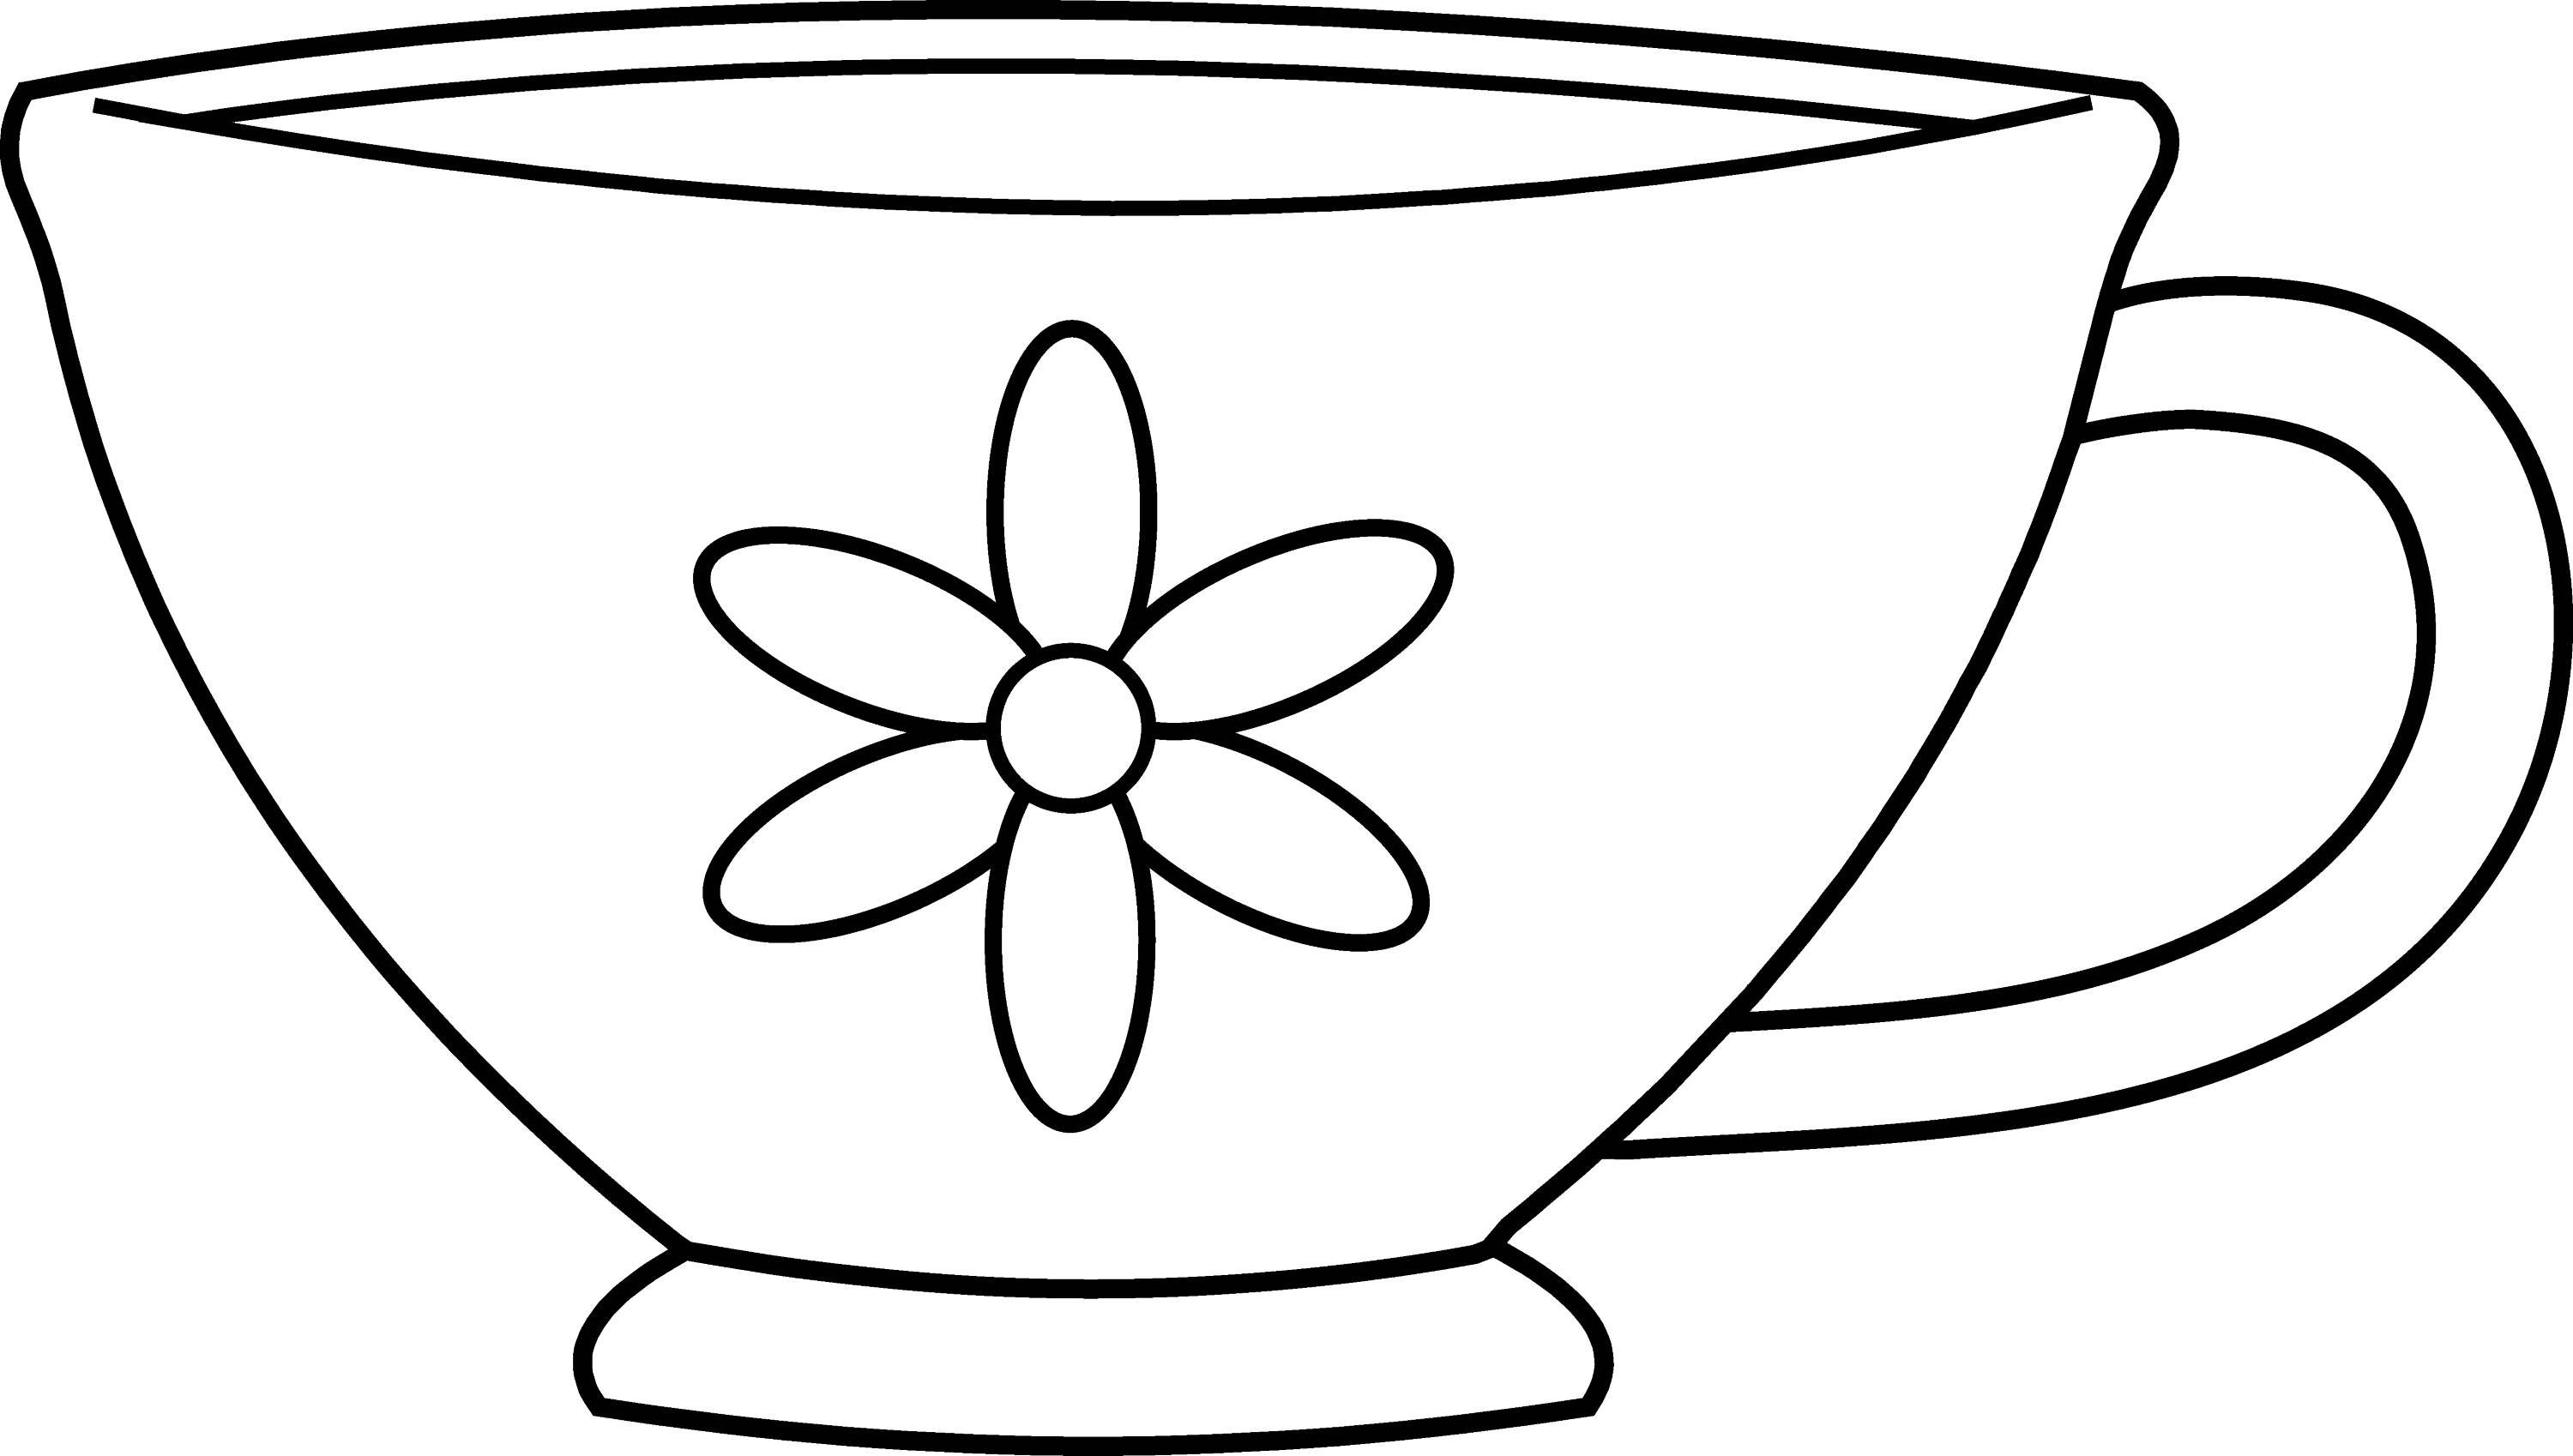 It's just a photo of Amazing Teacup Coloring Pages